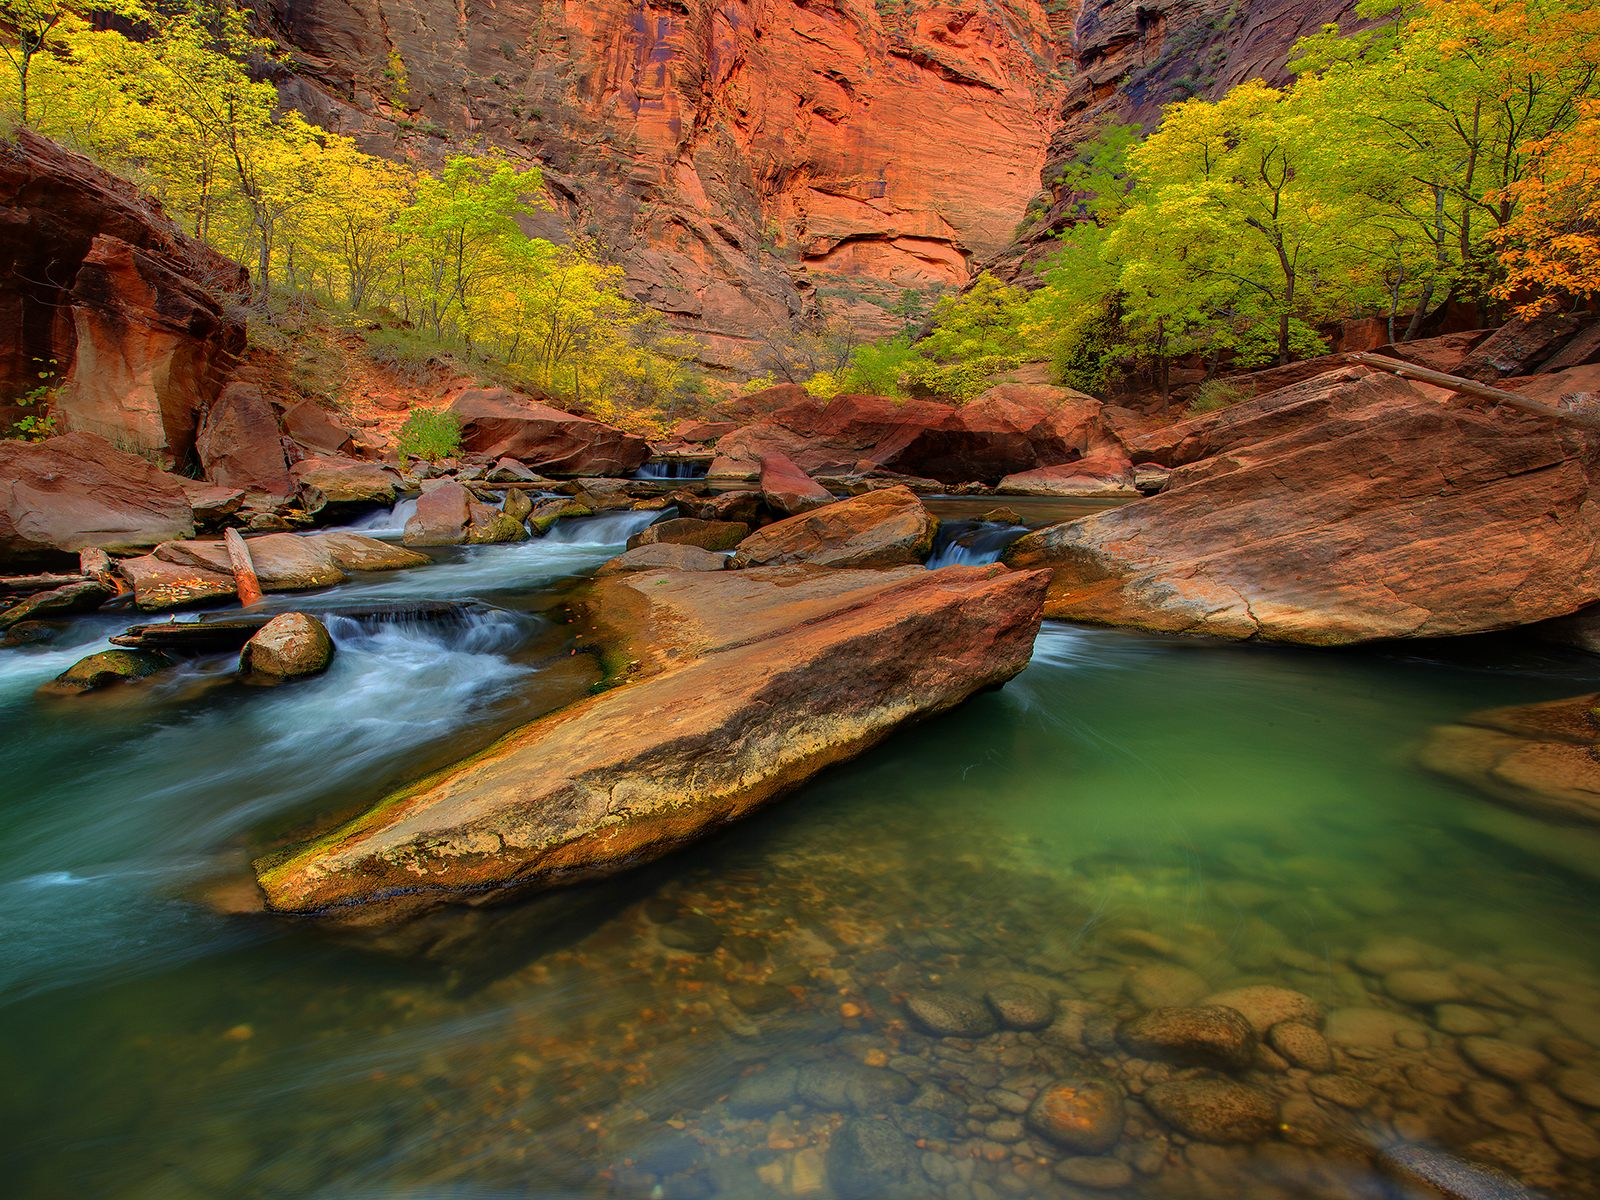 Zion National Park Quotes: Behind The Scenes / Virtual COO